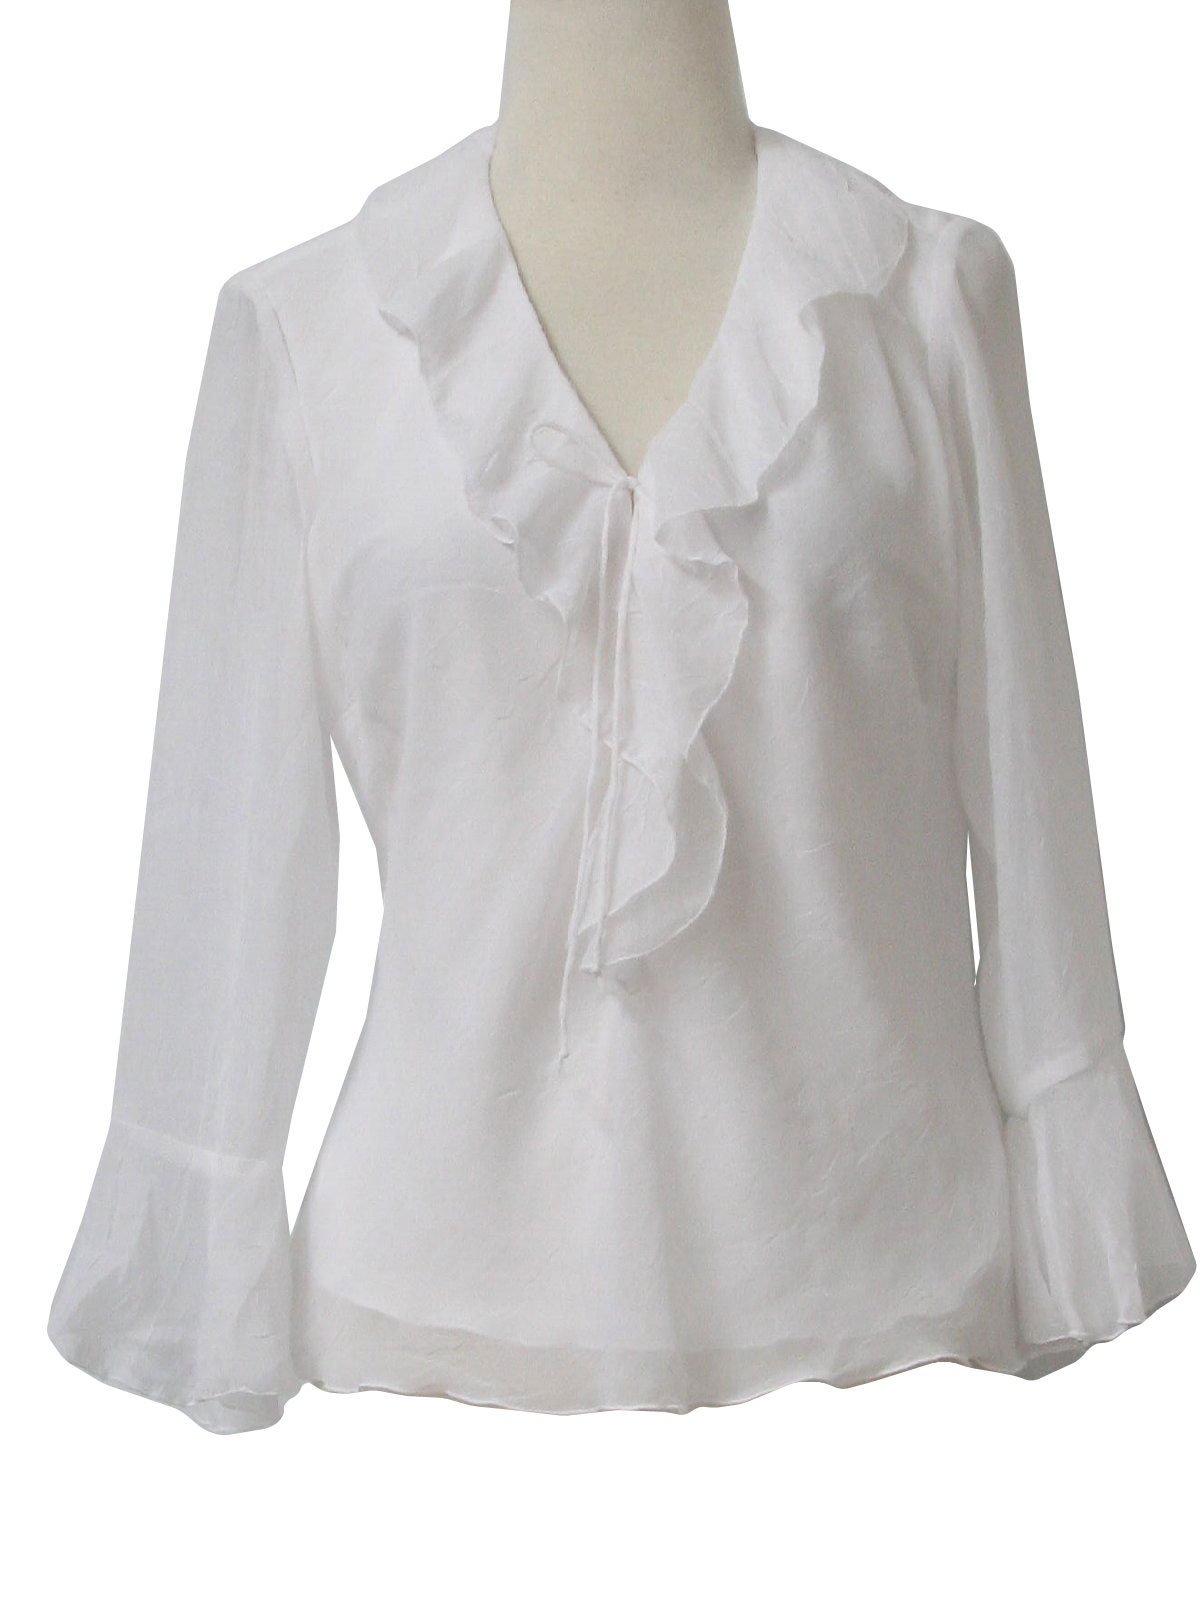 sheer polyester with knit lining three quarter sleeve pullover shirt